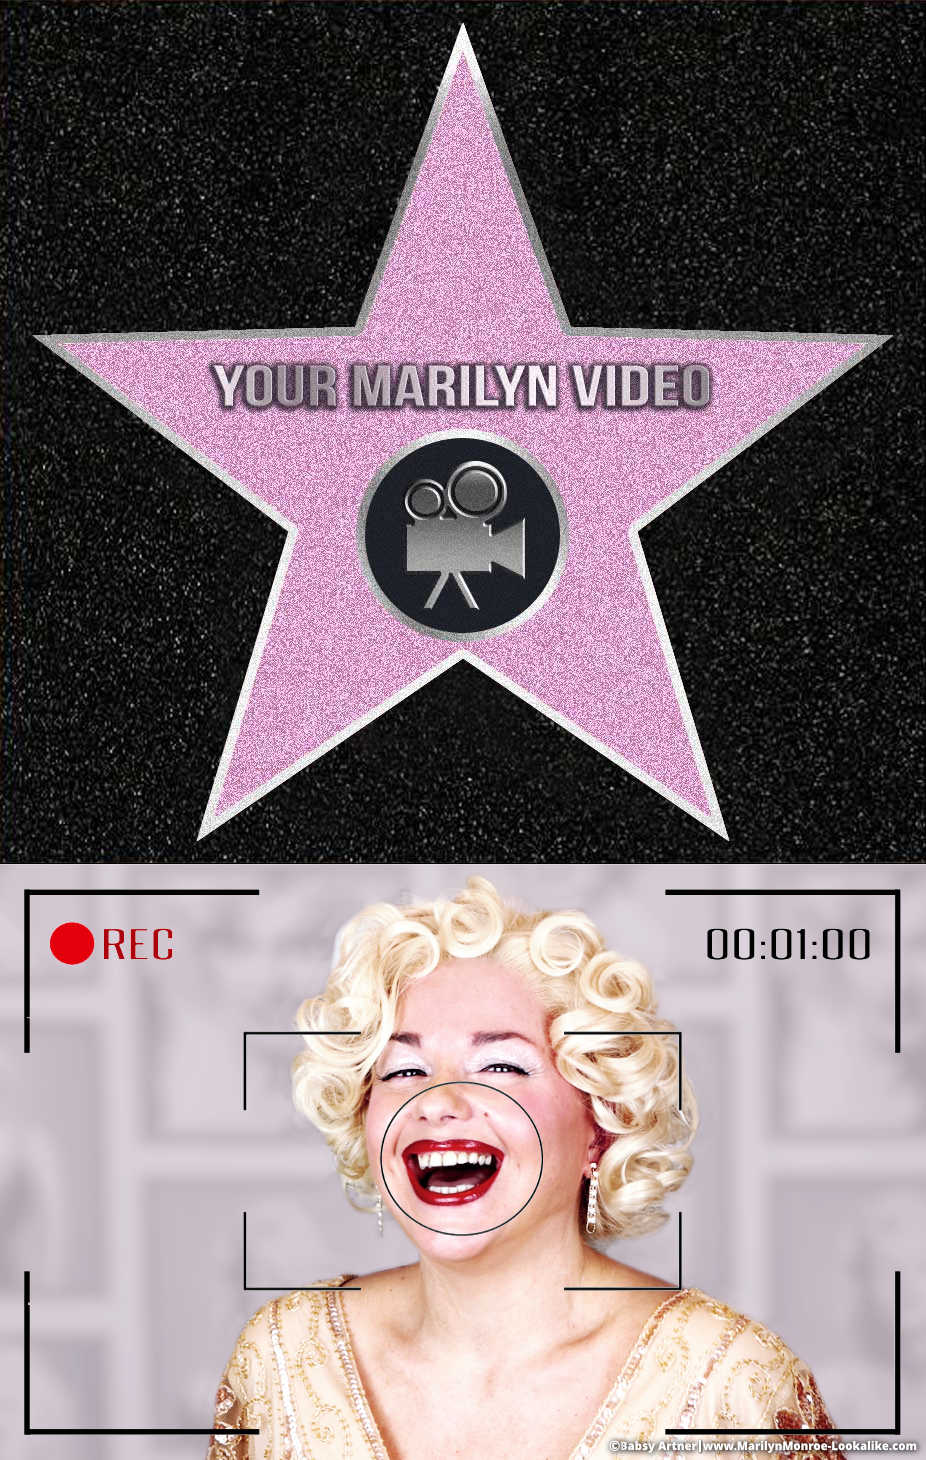 Personalized video from Babsy Artner as Marilyn Monroe